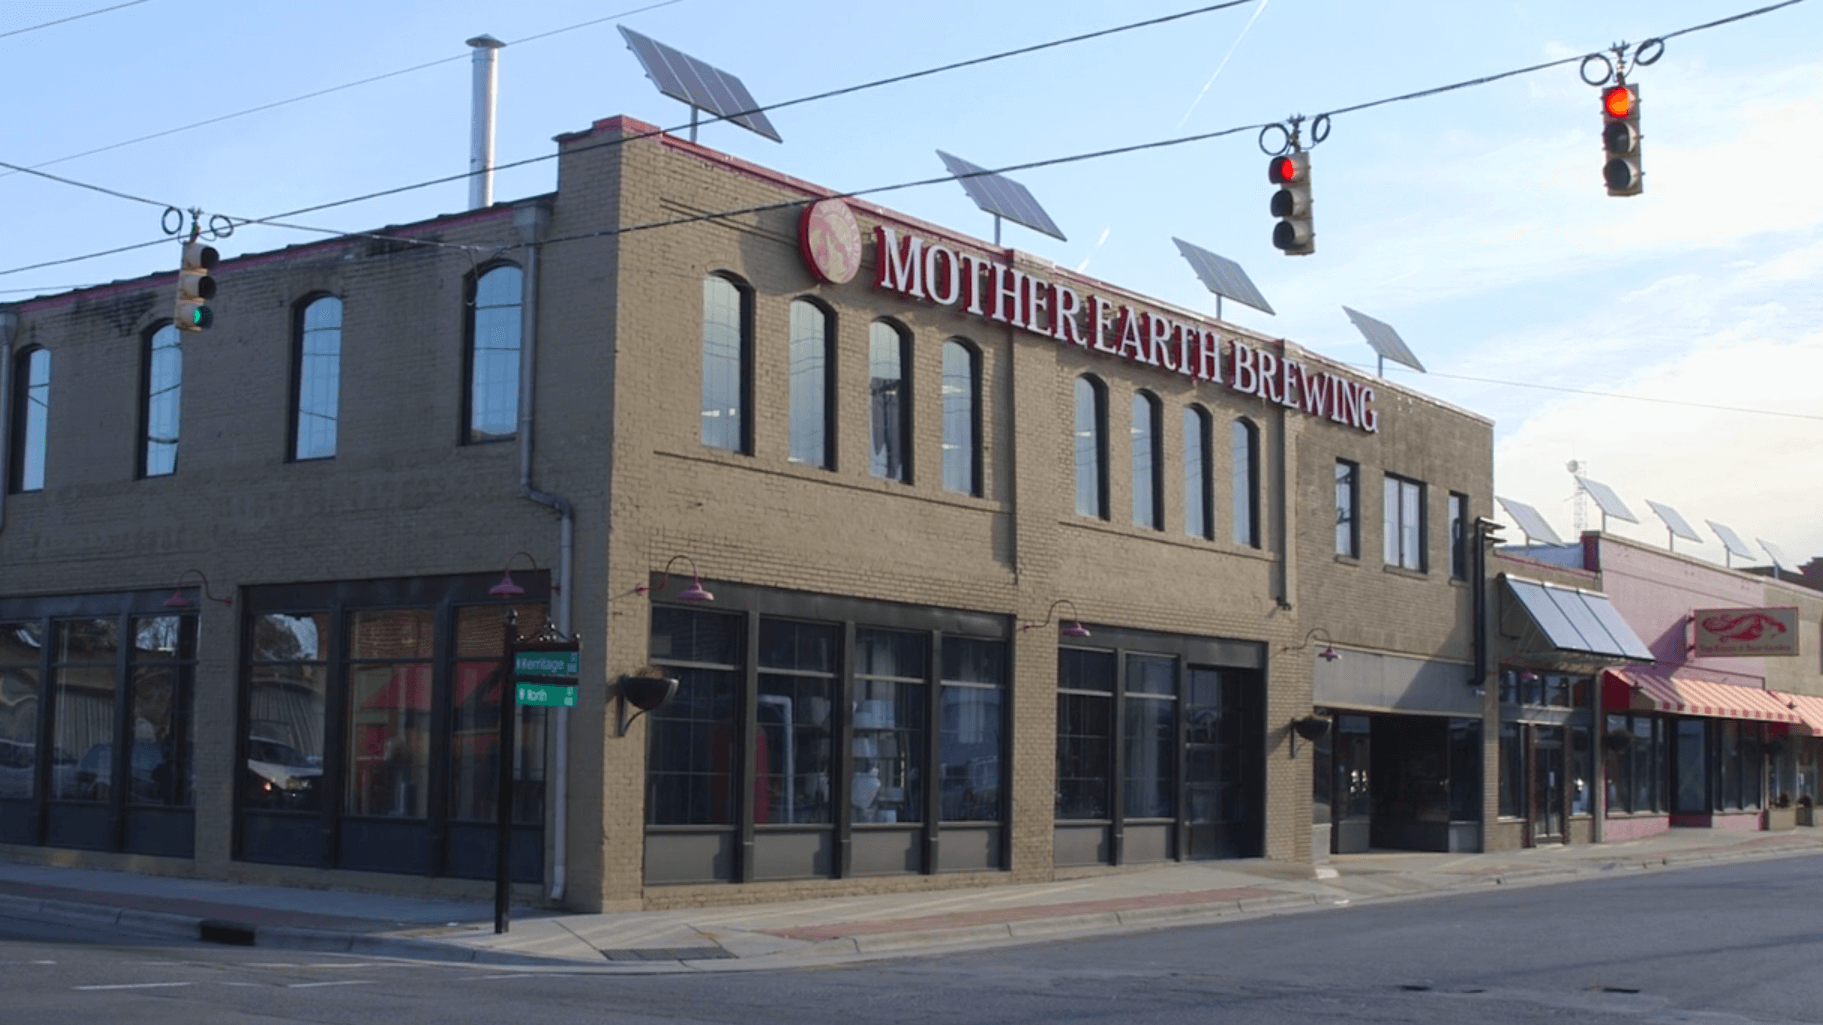 MOTHER EARTH BREWERY - DISTILLERY OF RUM, WHISKEY AND GIN302 Mitchell St • Kinston, NC 28501(252) 208-2437